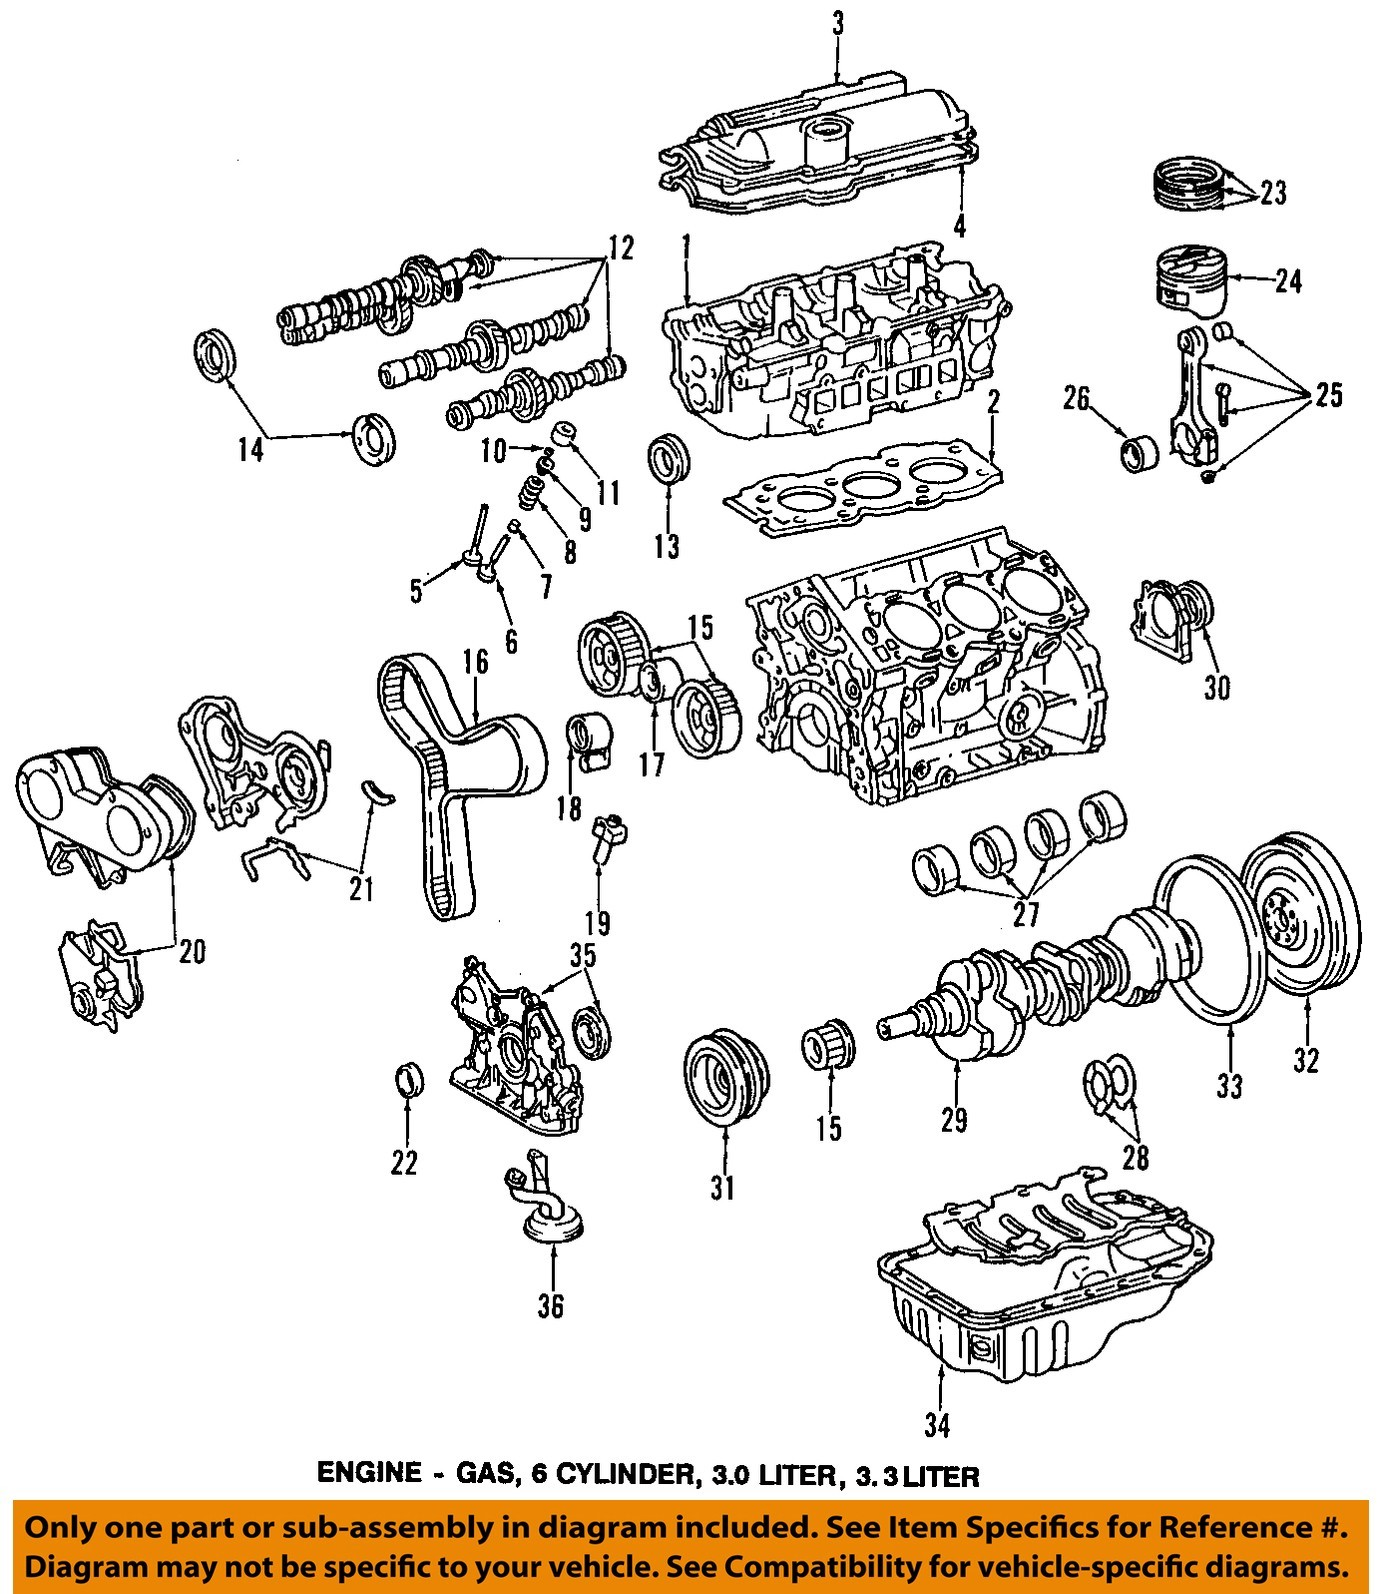 1994 toyota camry engine diagram 1997 toyota camry engine diagram toyota  oem valve lifter – my